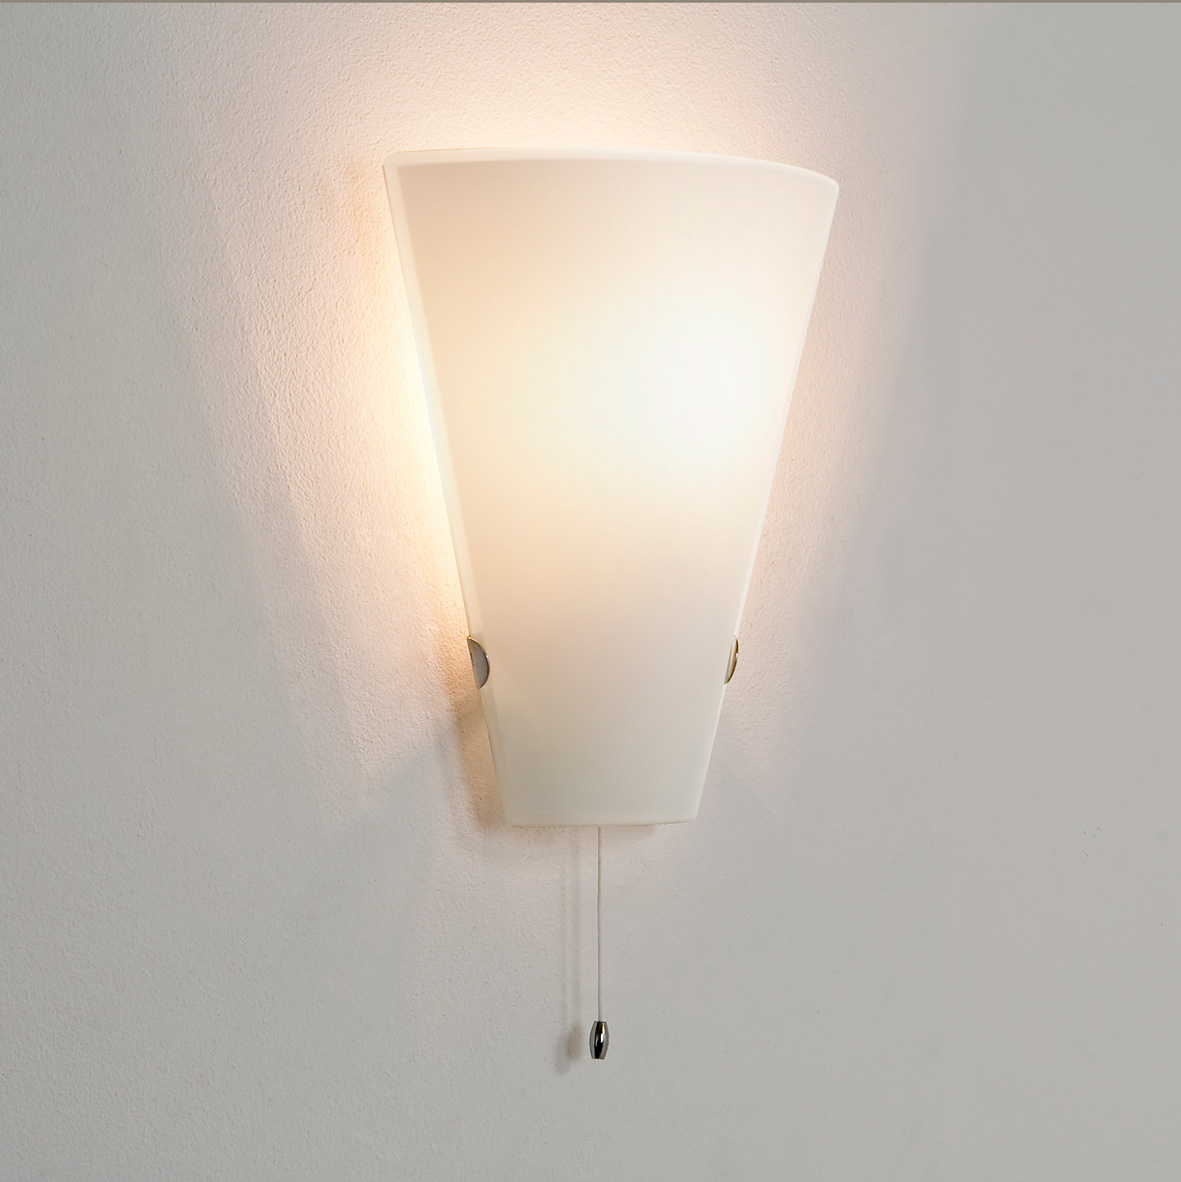 10 Things To Know About Wall Lights Pull Cord Warisan Lighting Chrome Switch For Bathrooms Light Pullswitch What Consider When Buying